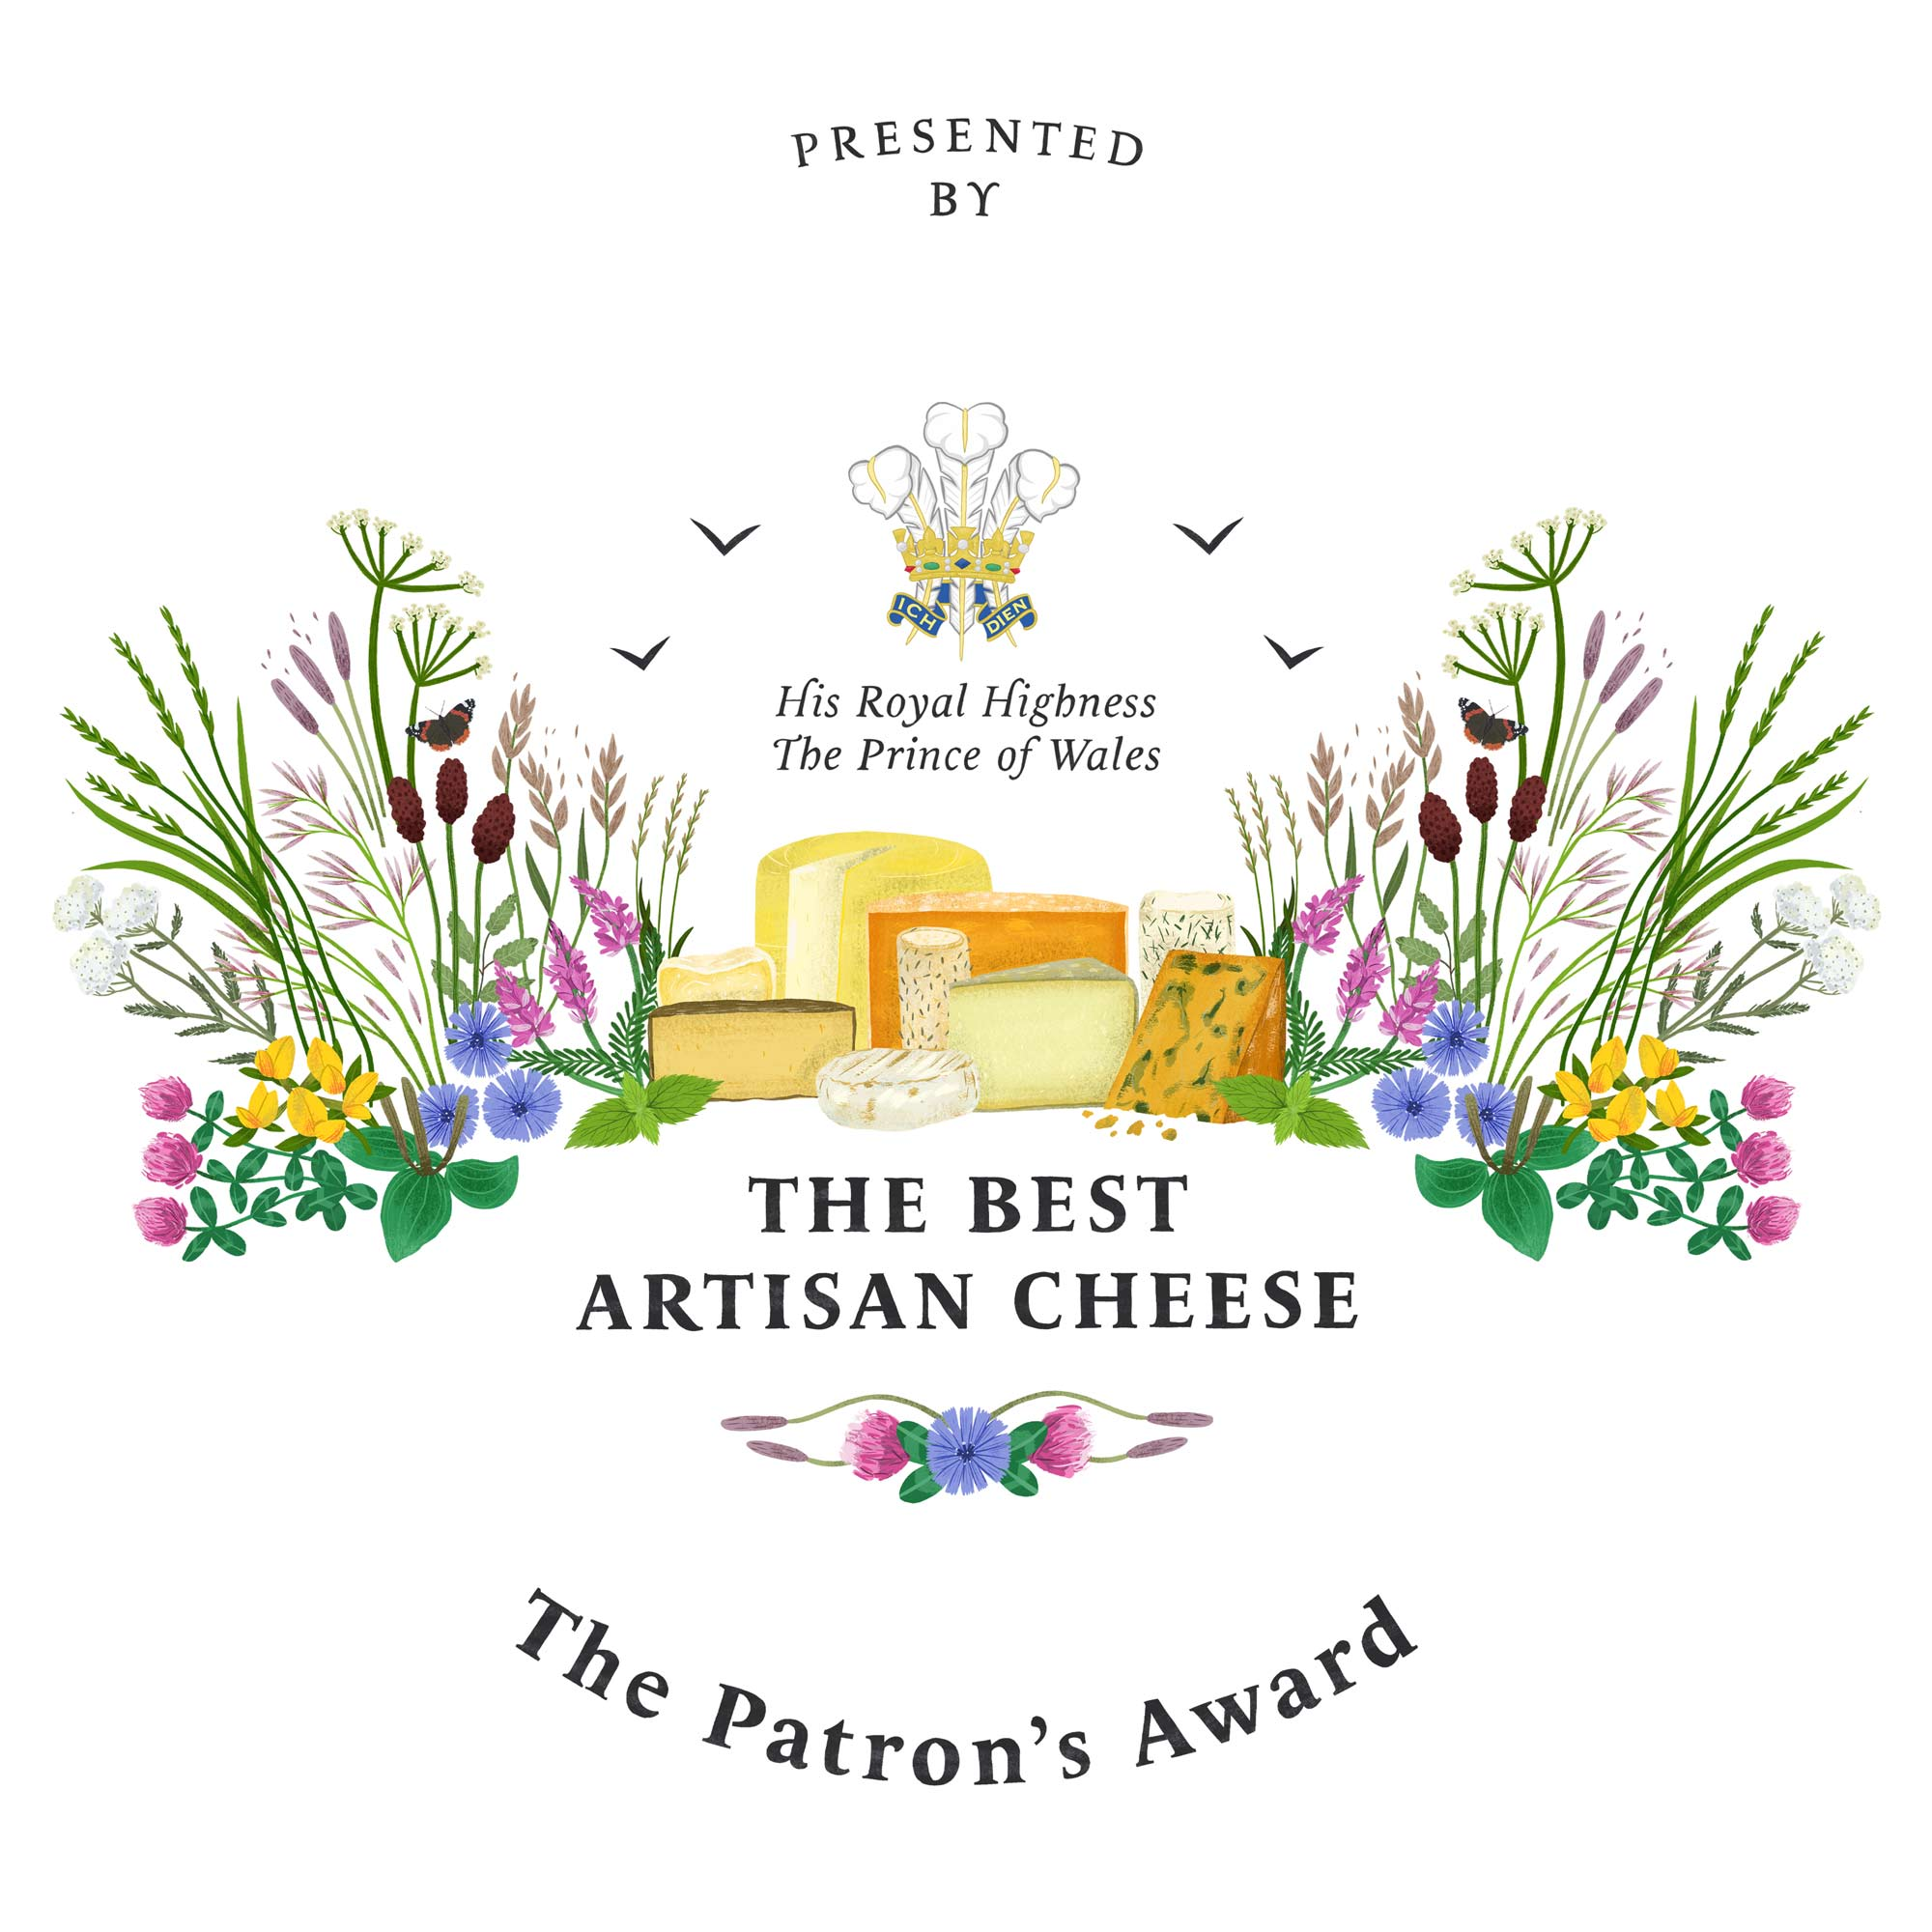 The Best Artisan Cheese Trophy Illustration portfolio cover image